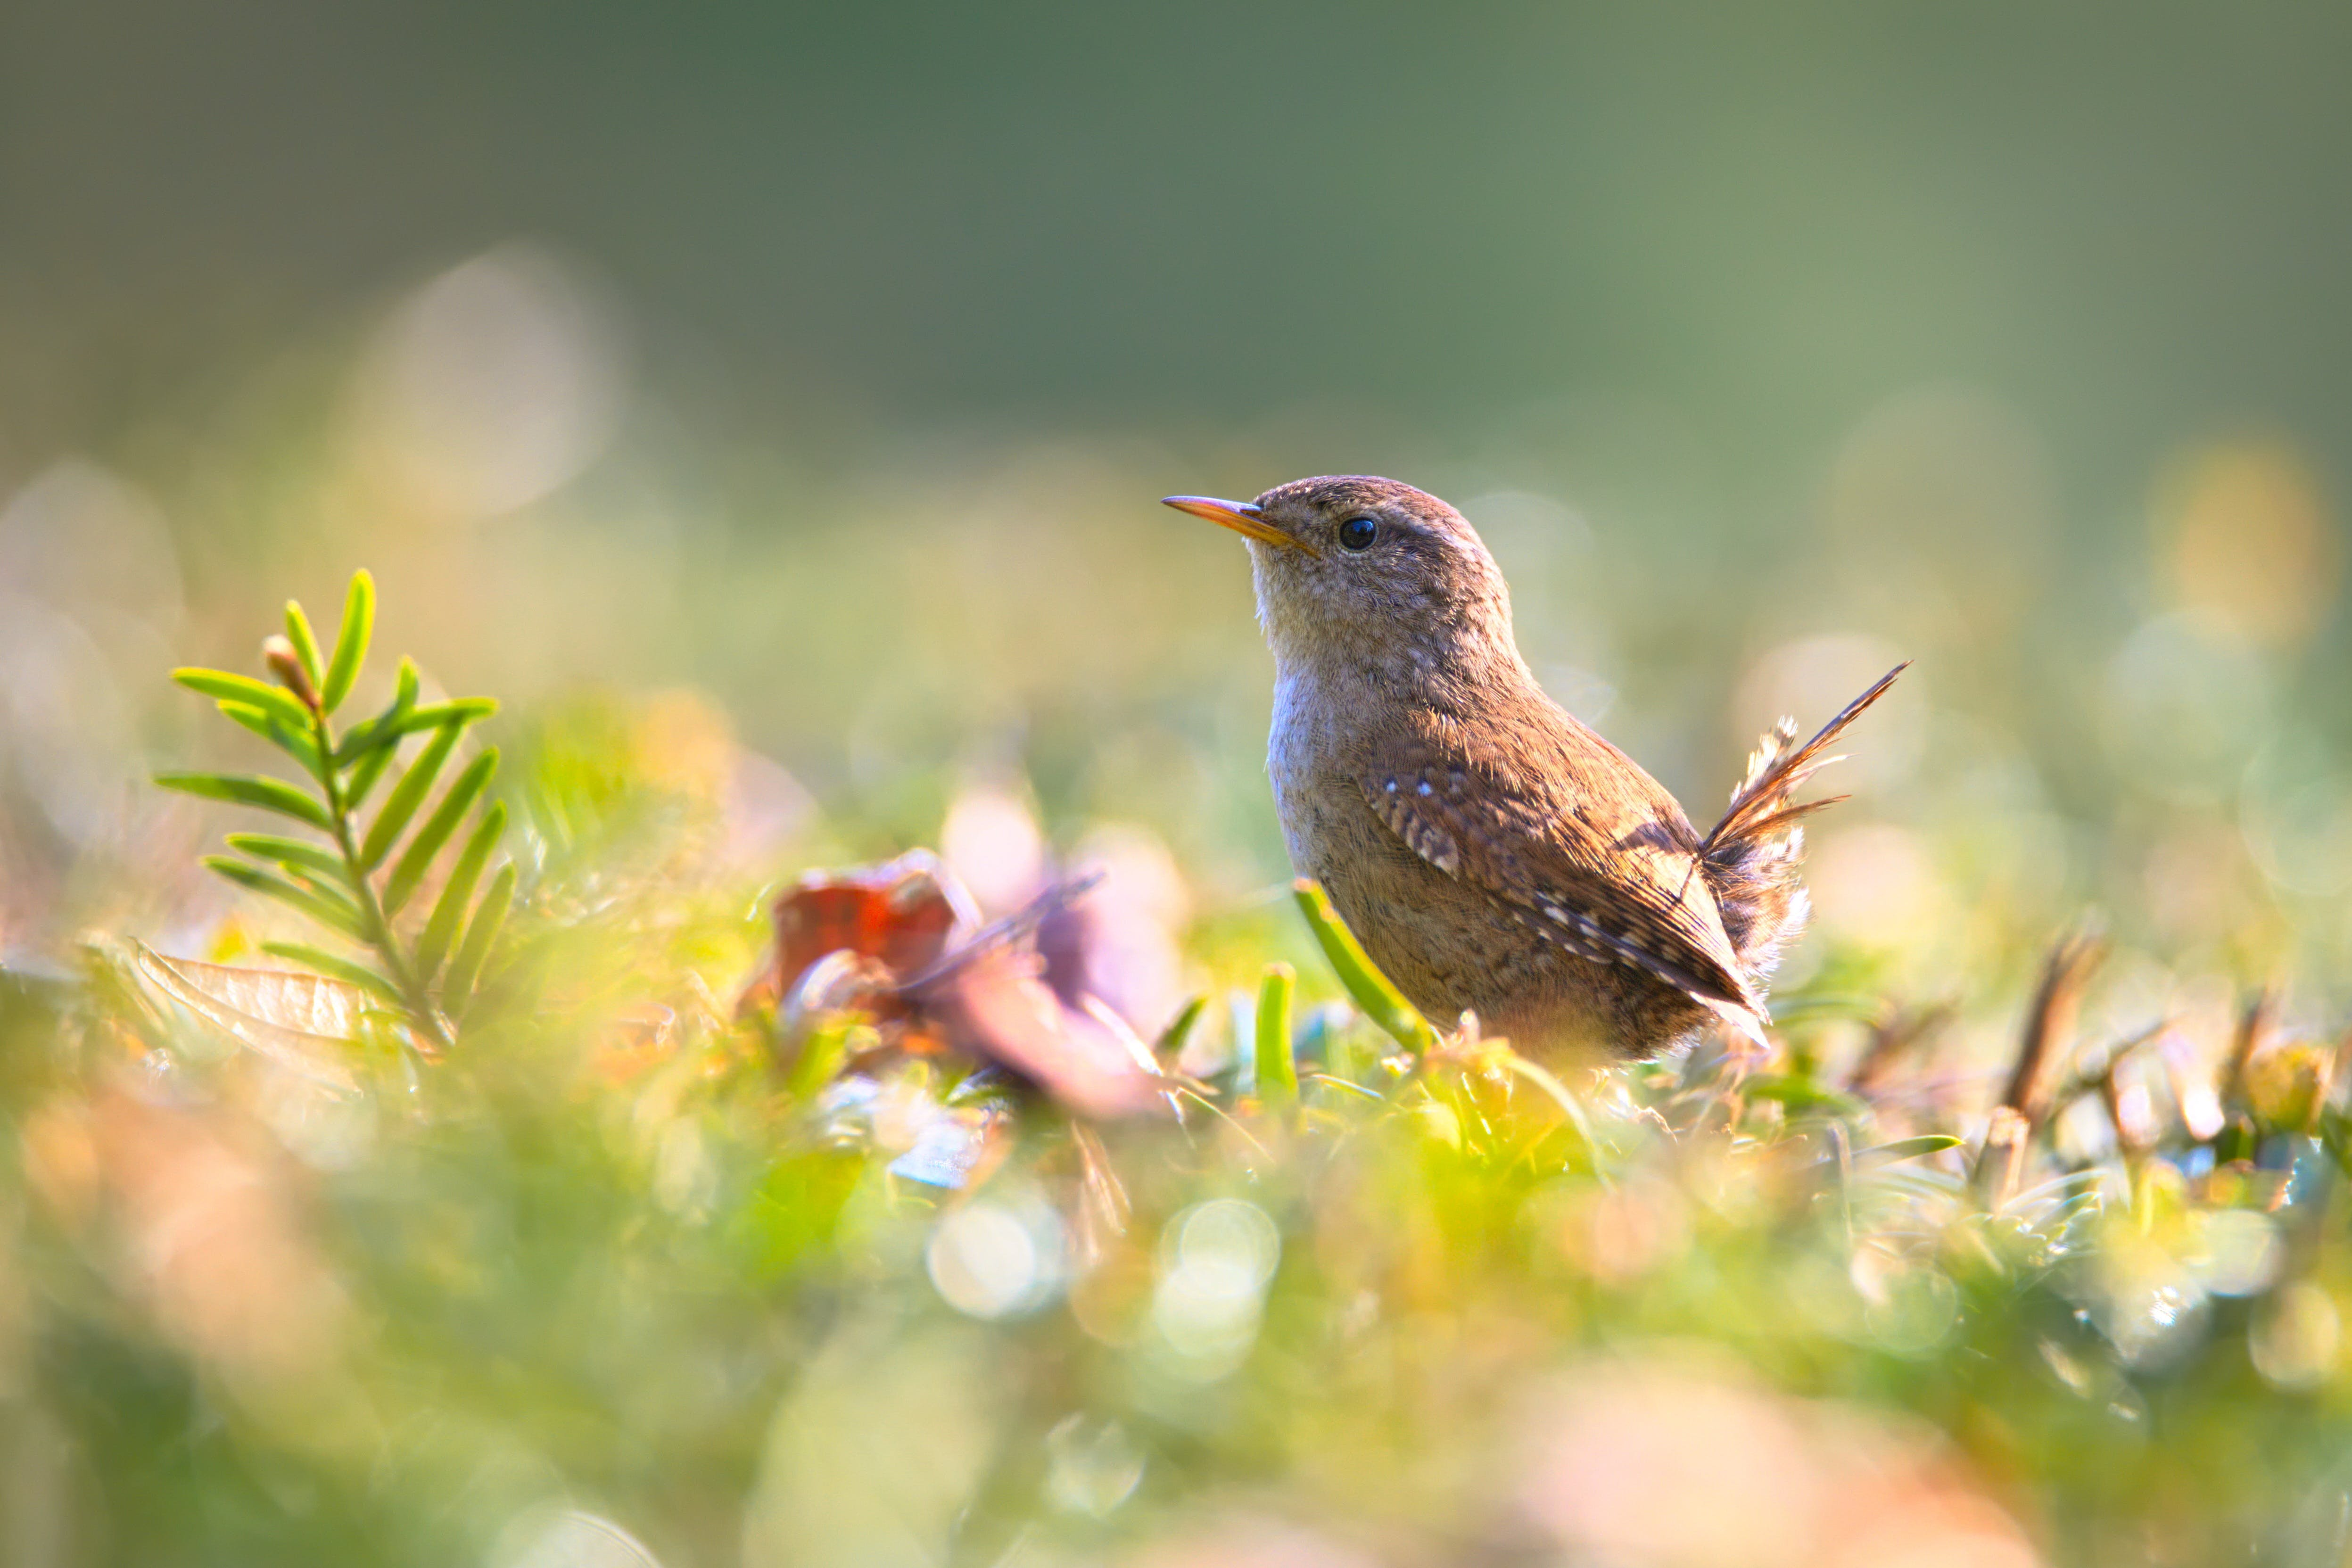 Brown Bird on Green Plant